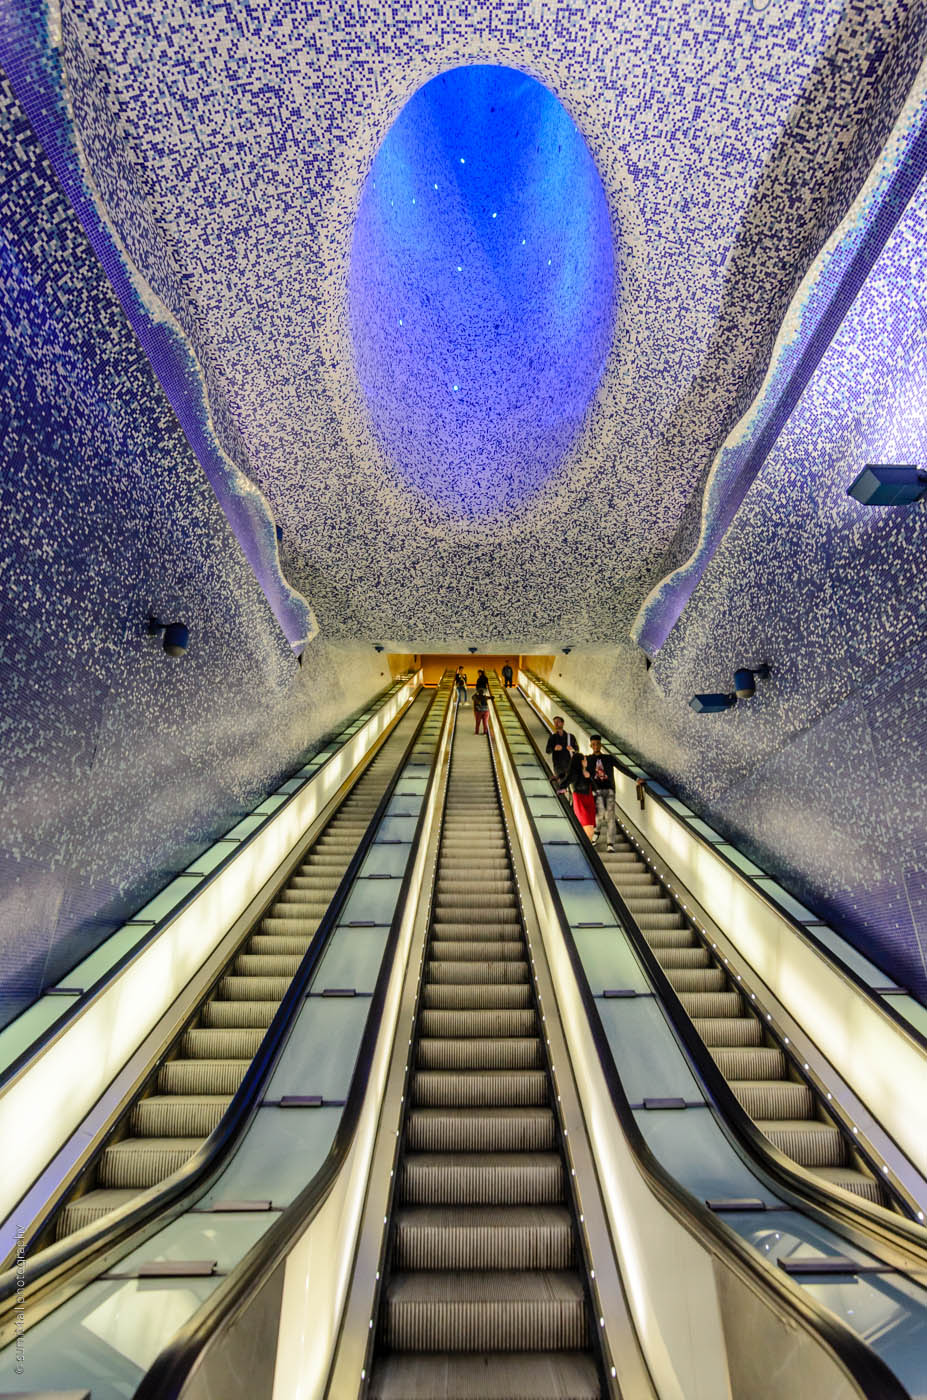 Escalators at Toledo Metro Station in Naples